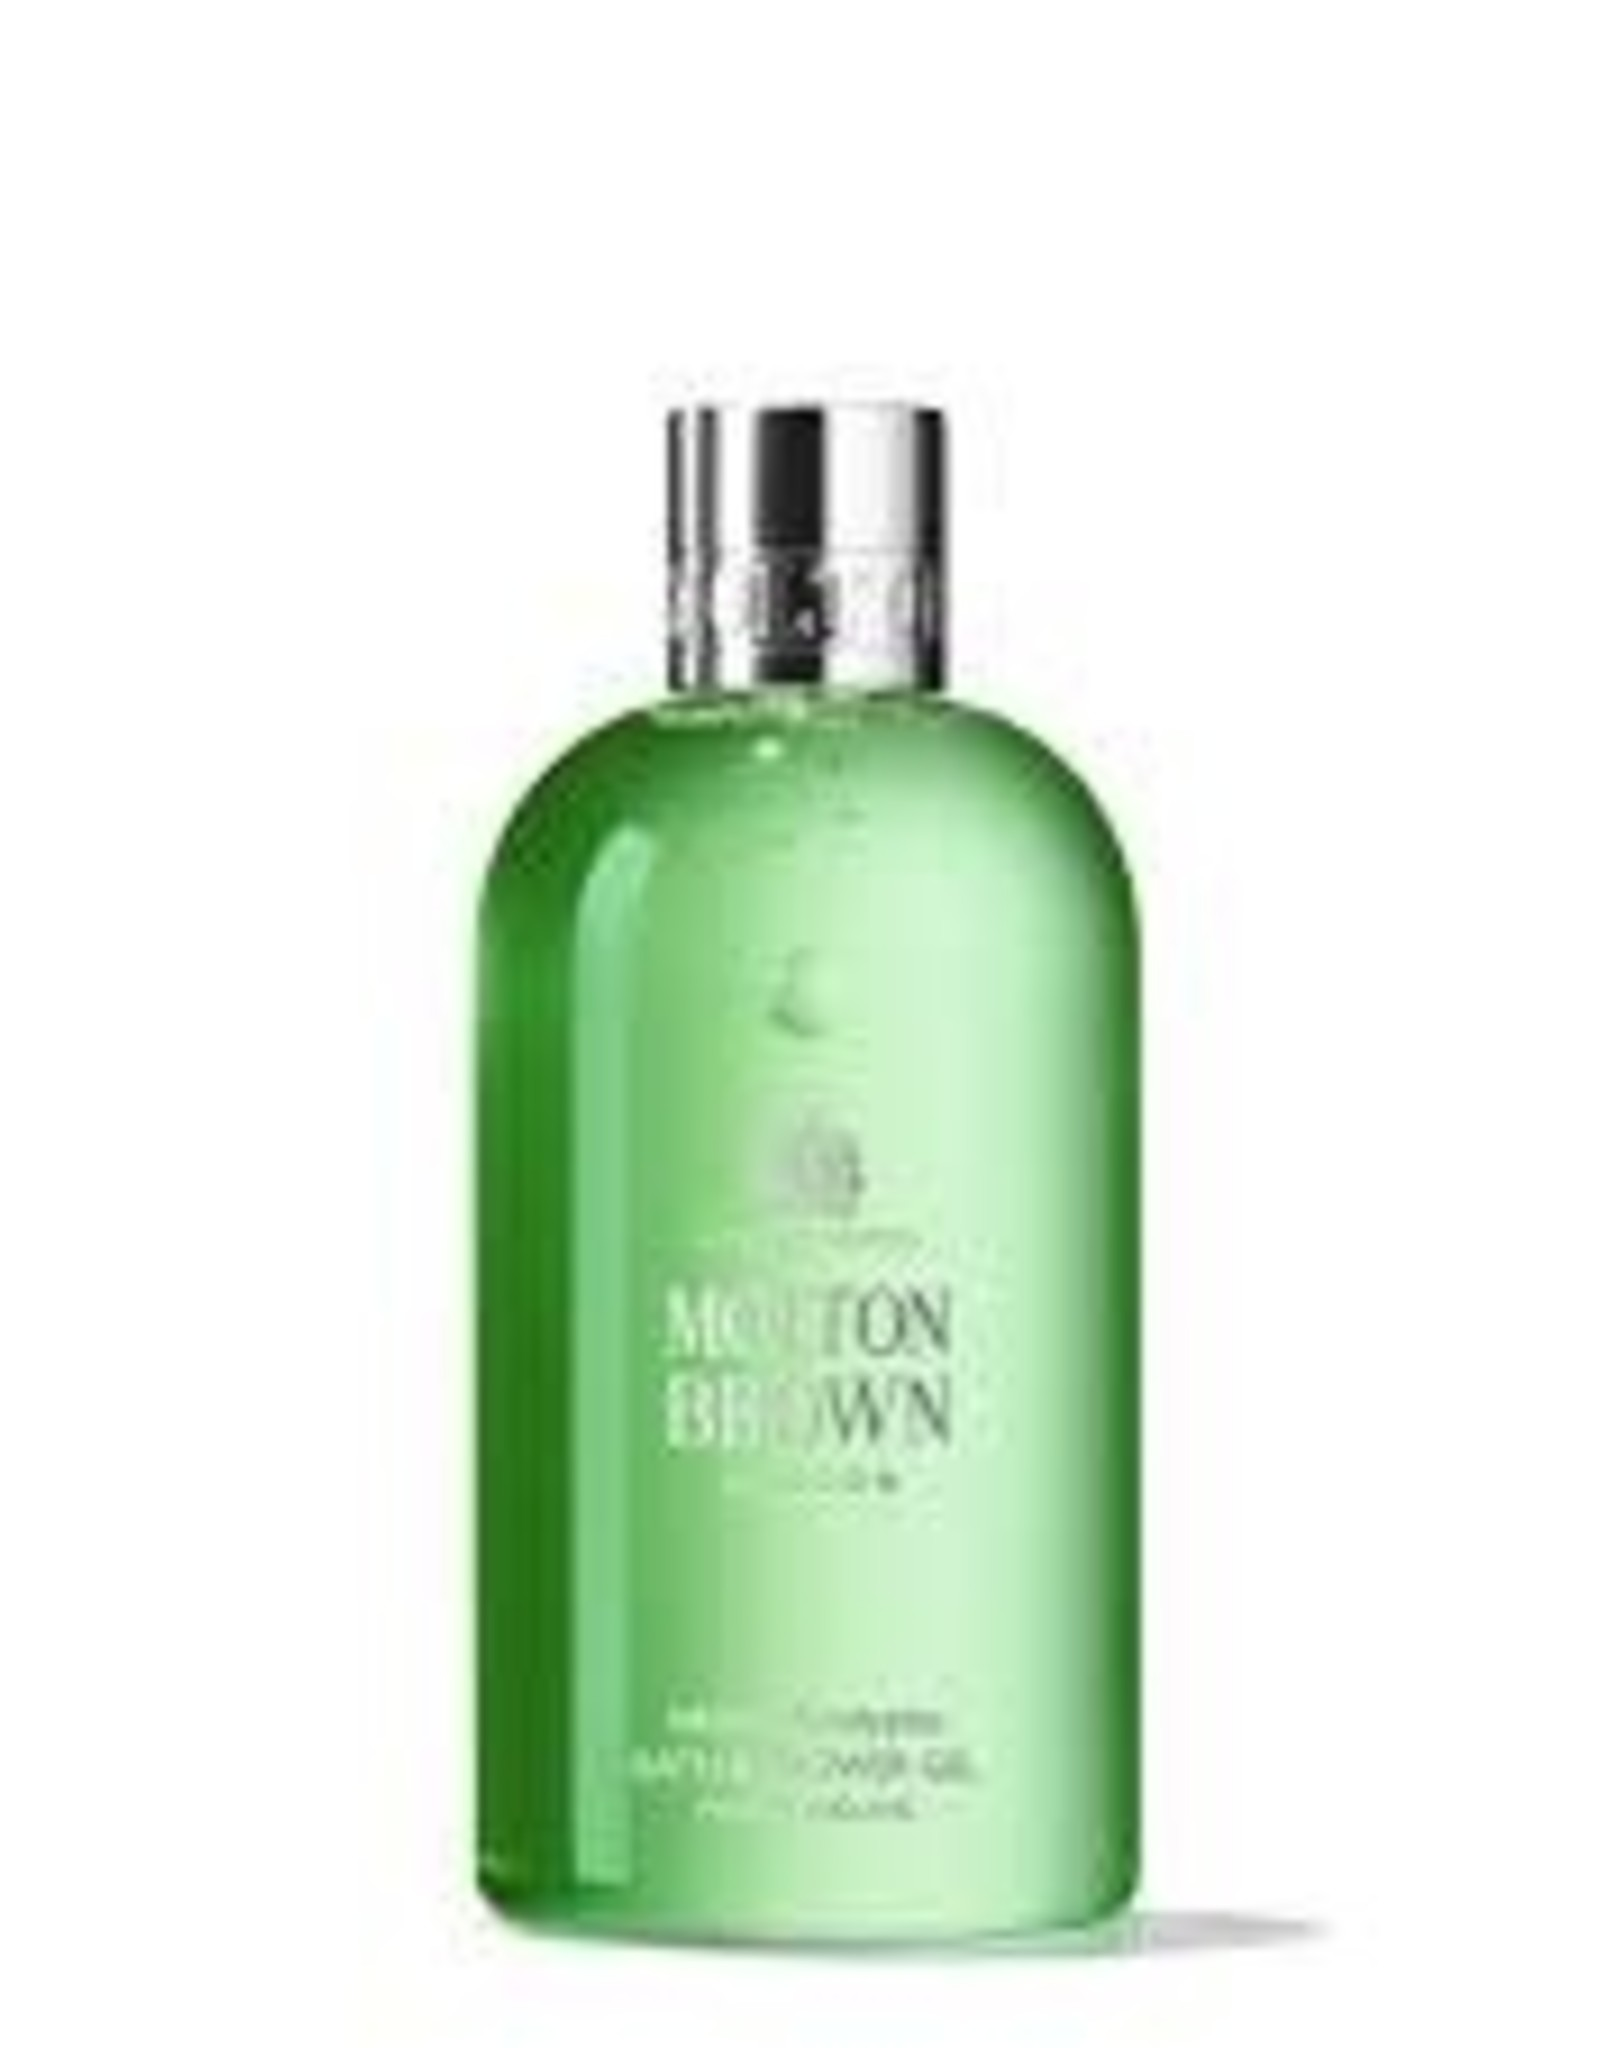 Molton Brown Infusing Eucalyptus Body Wash